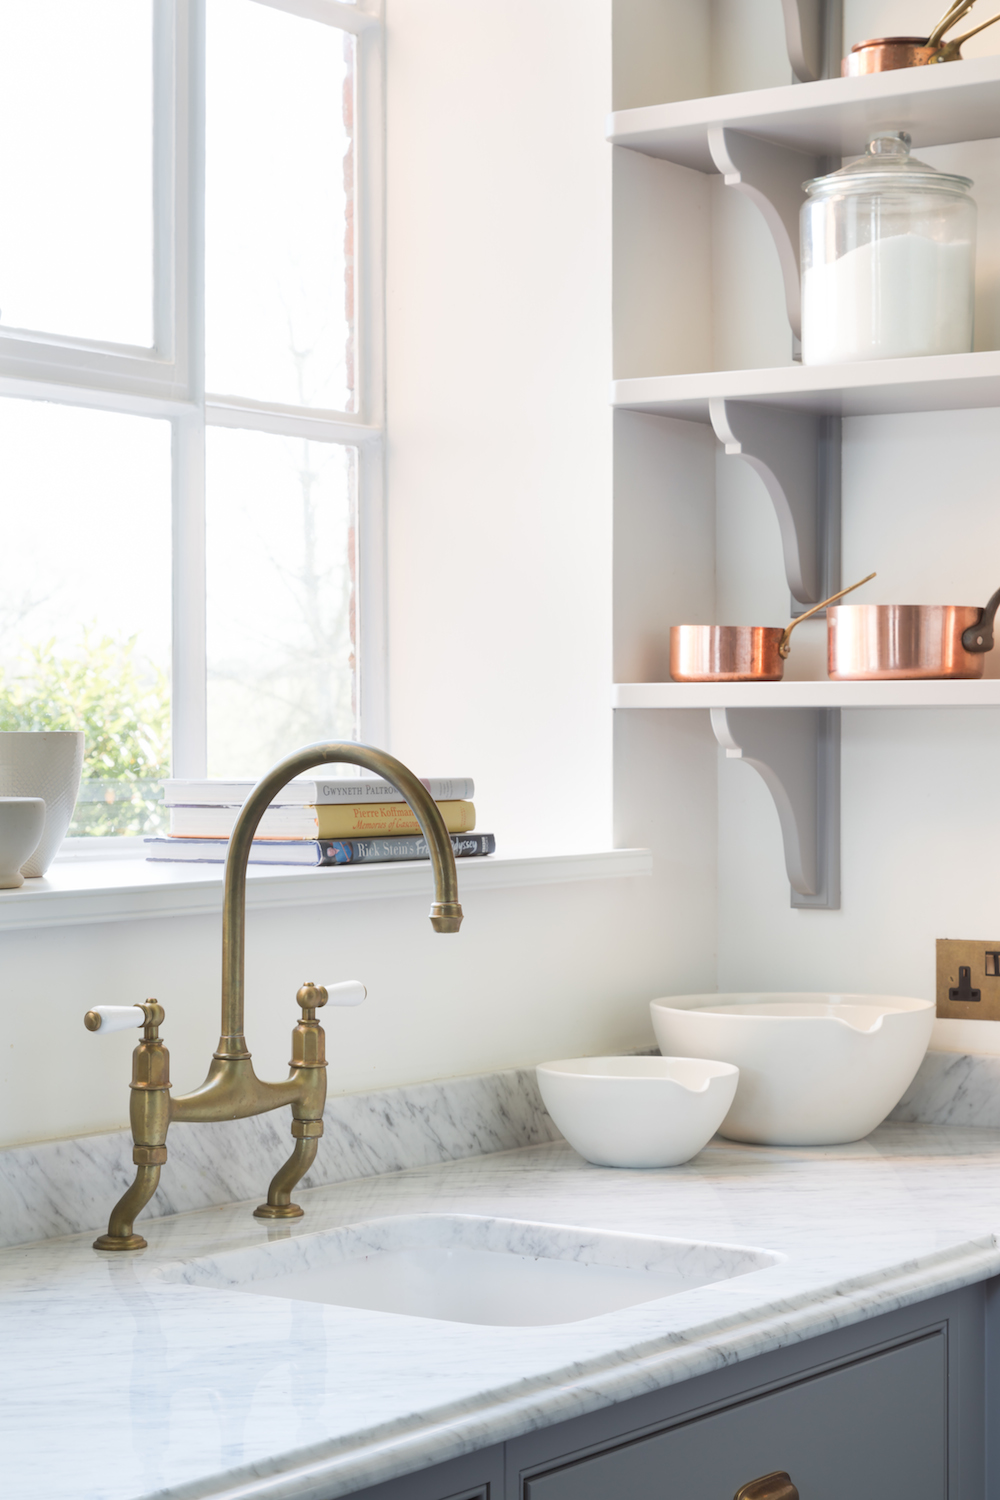 and pin bibcocks nickel sink perrin faucets wall kitchen mounted mayan rowe faucet tap